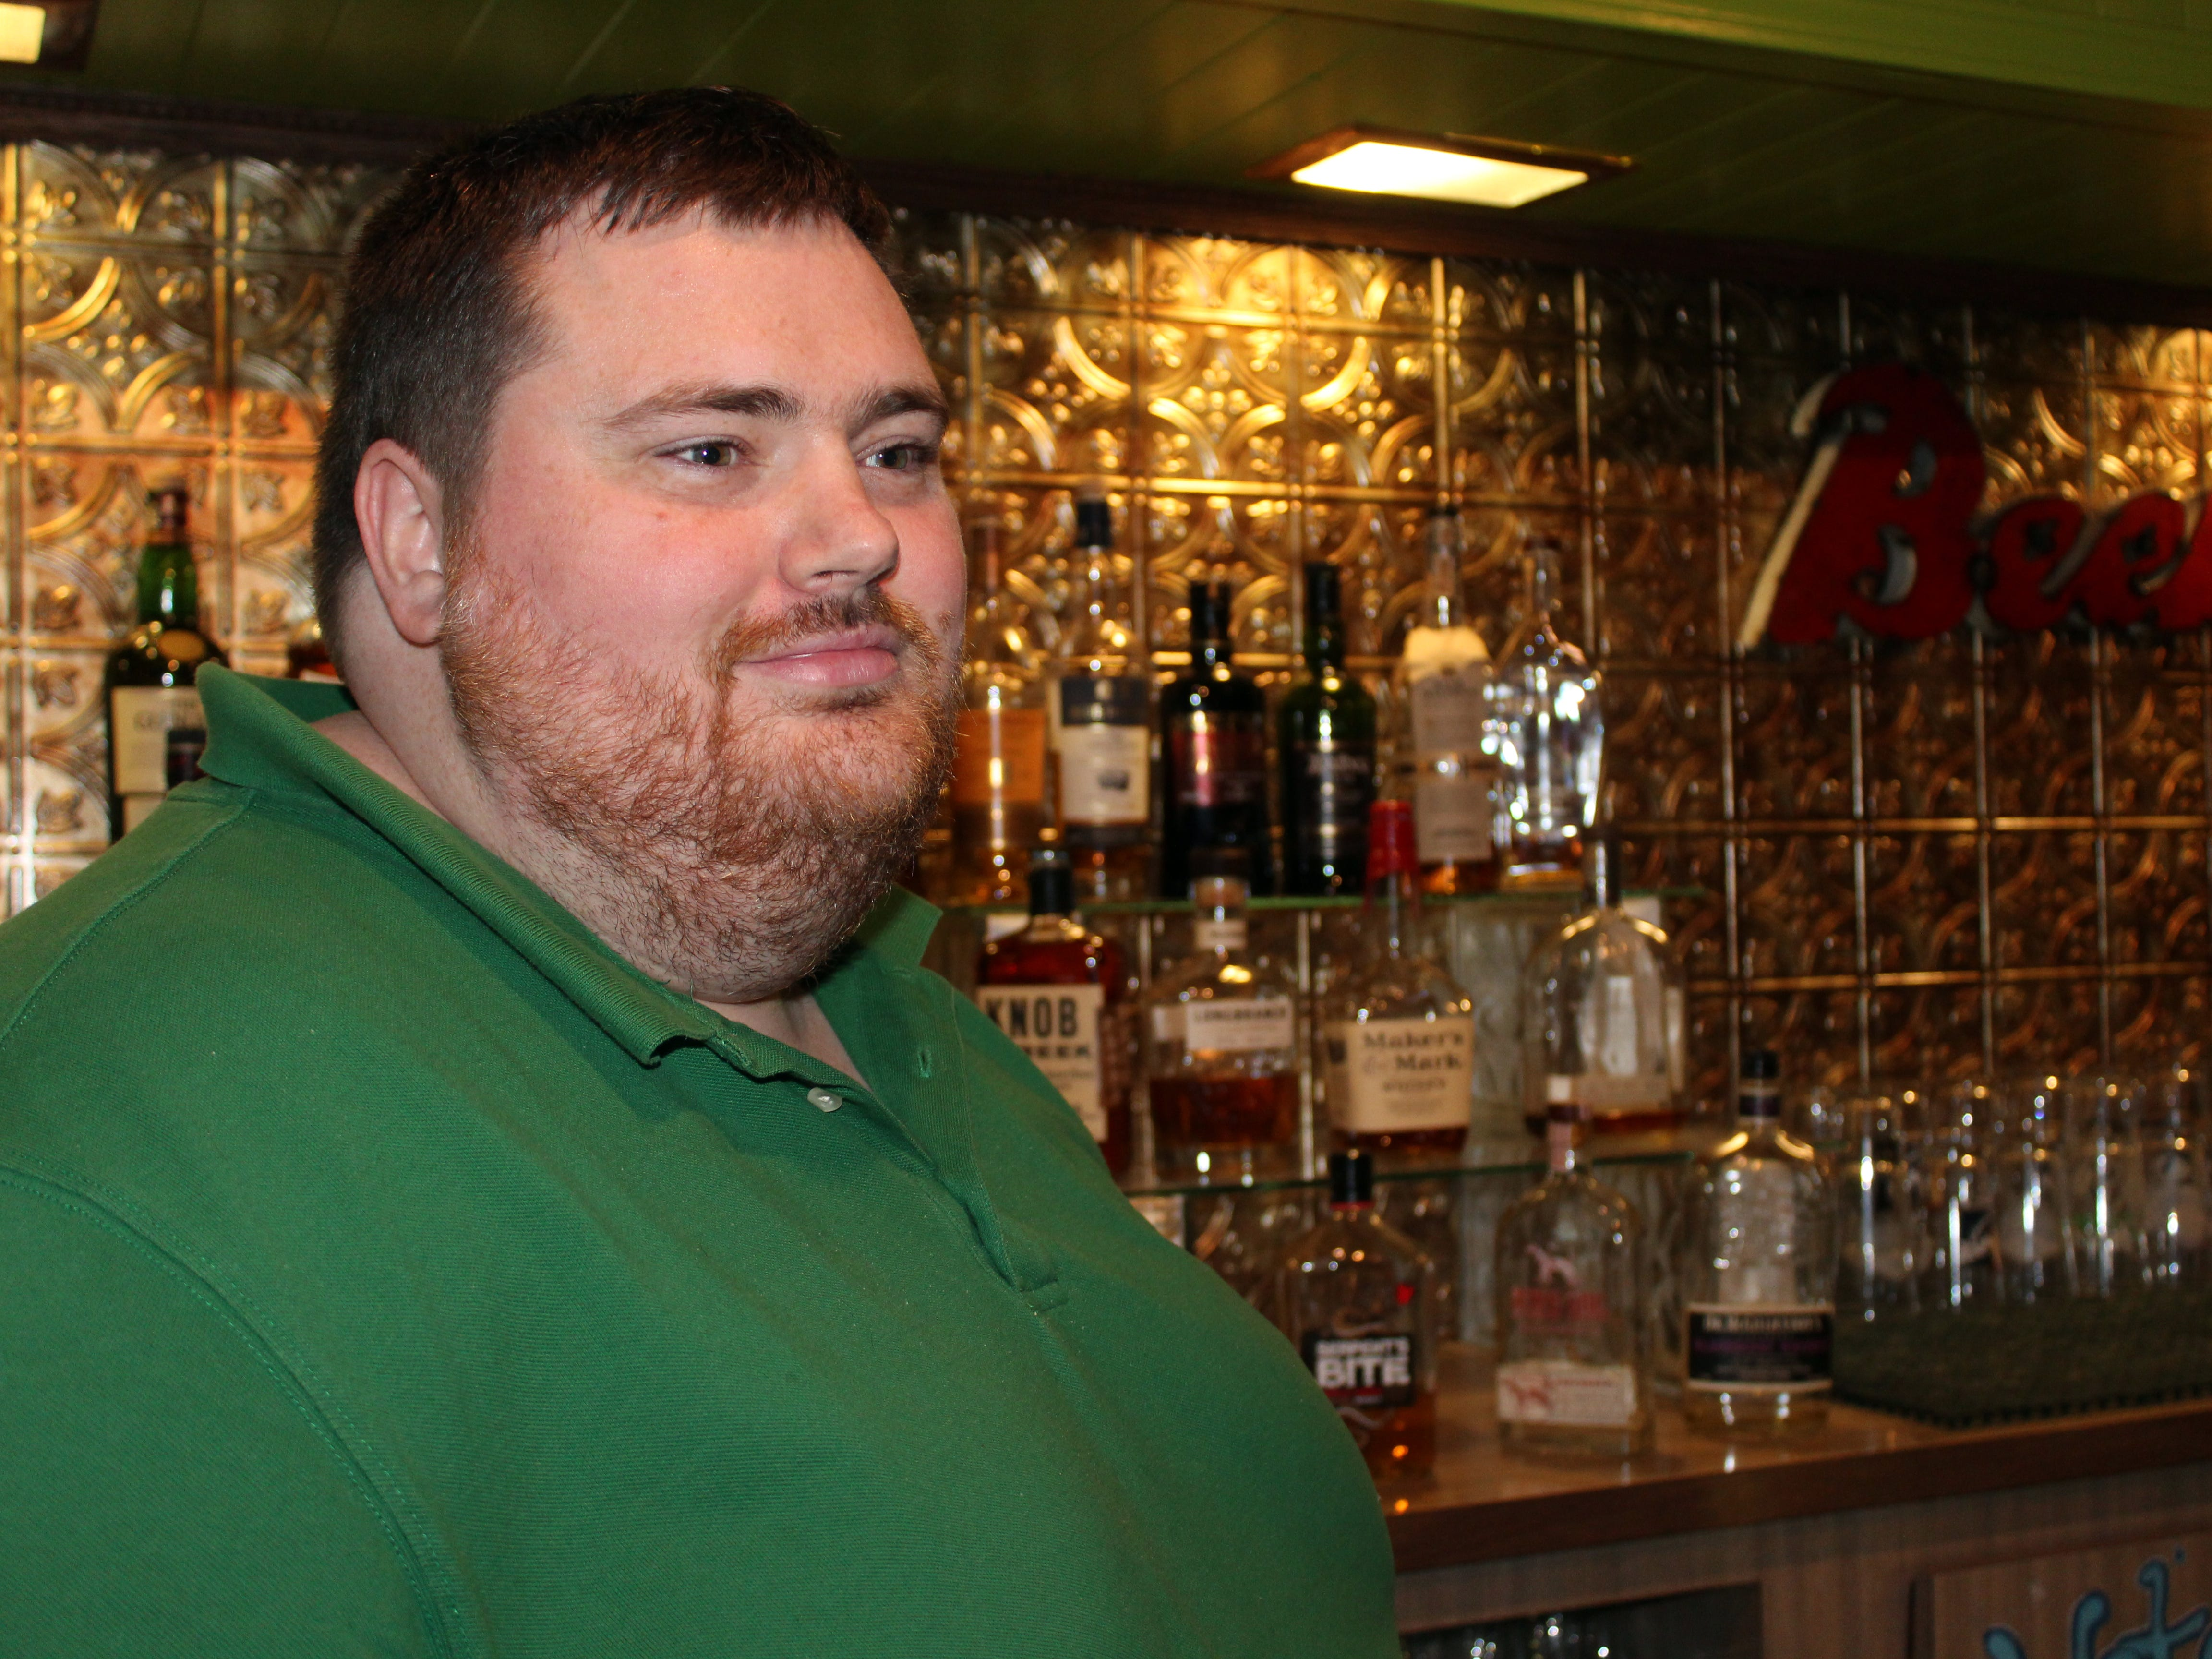 Jacob Walker, chef-owner of Green Dragon Brewpub in Fond du Lac, is hoping to add sturgeon to his menu.